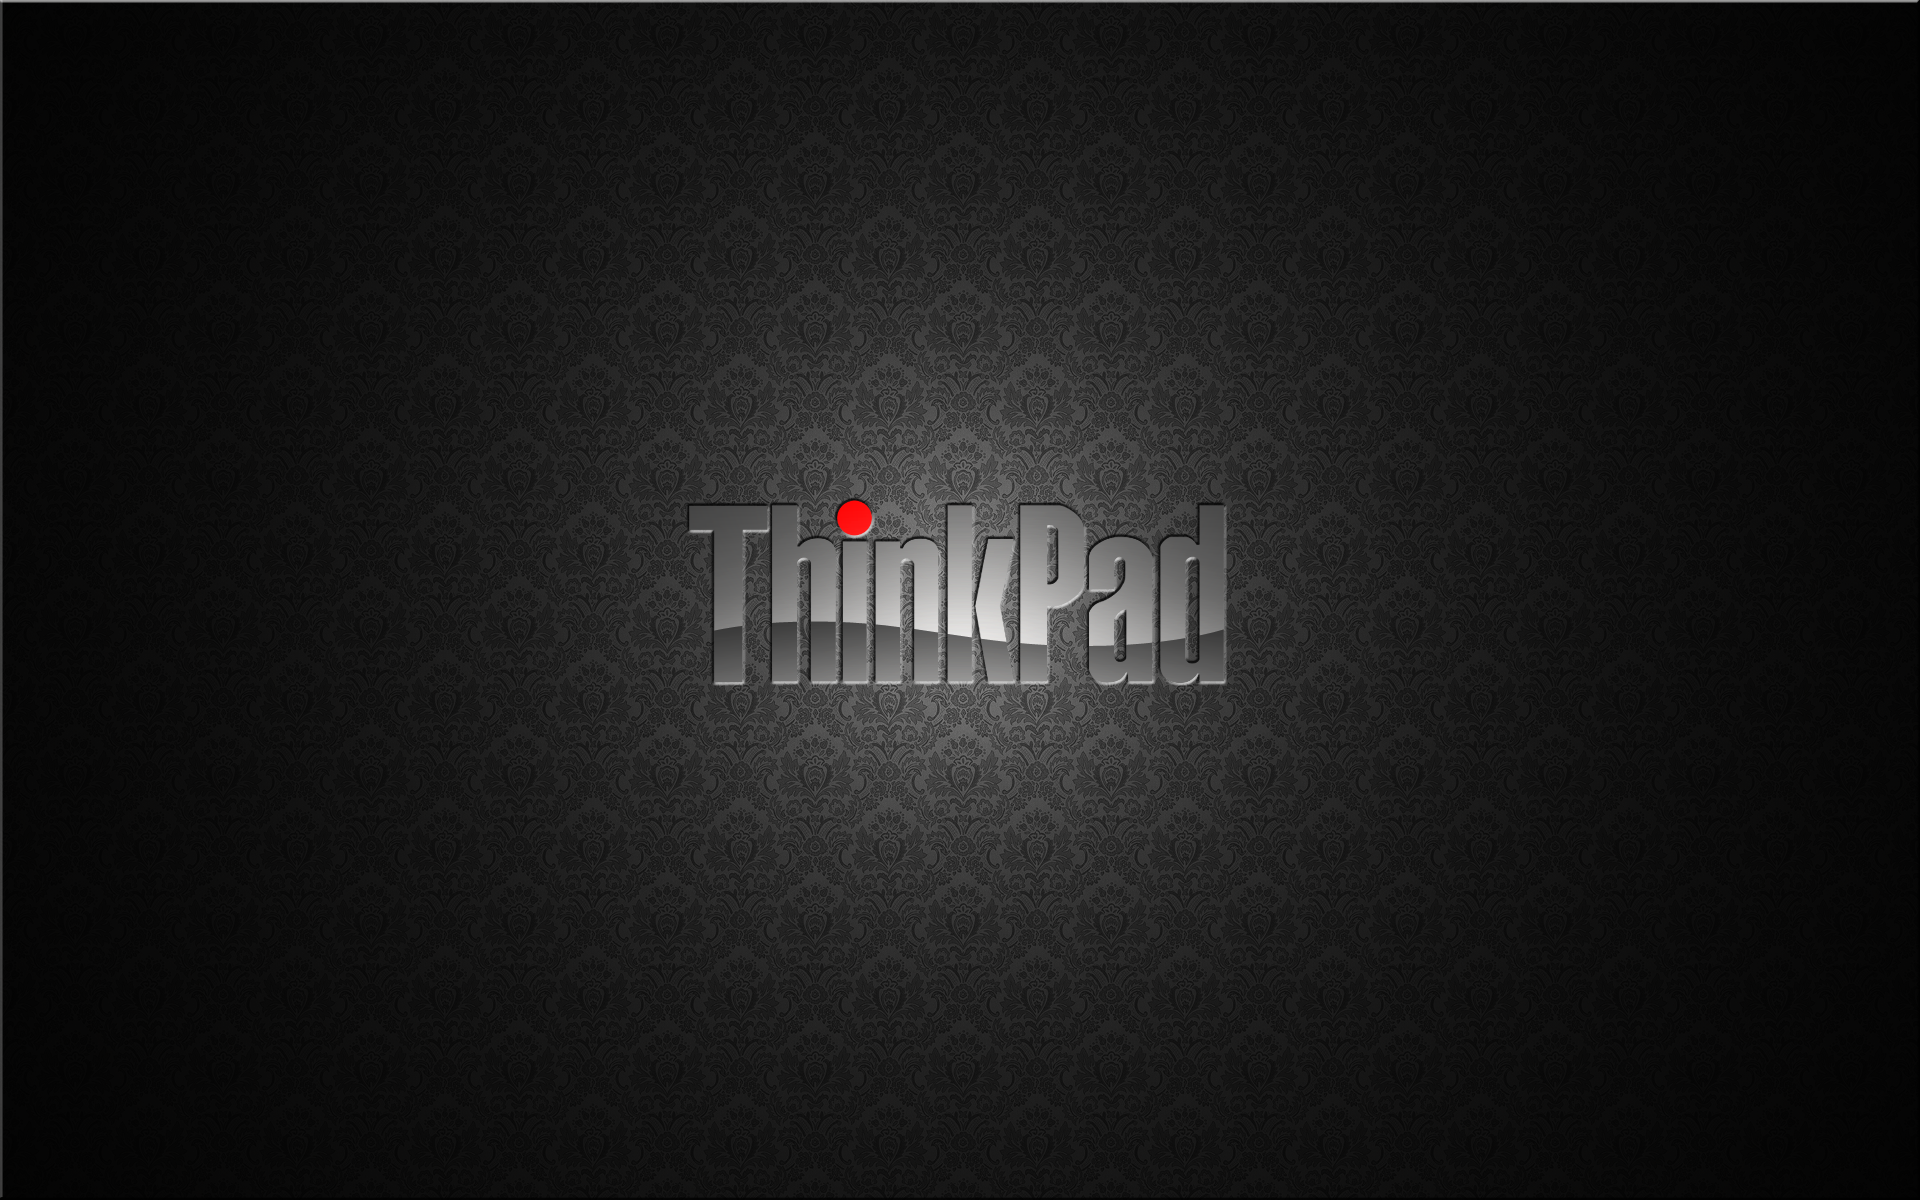 thinkpad wallpapers search 1920x1200